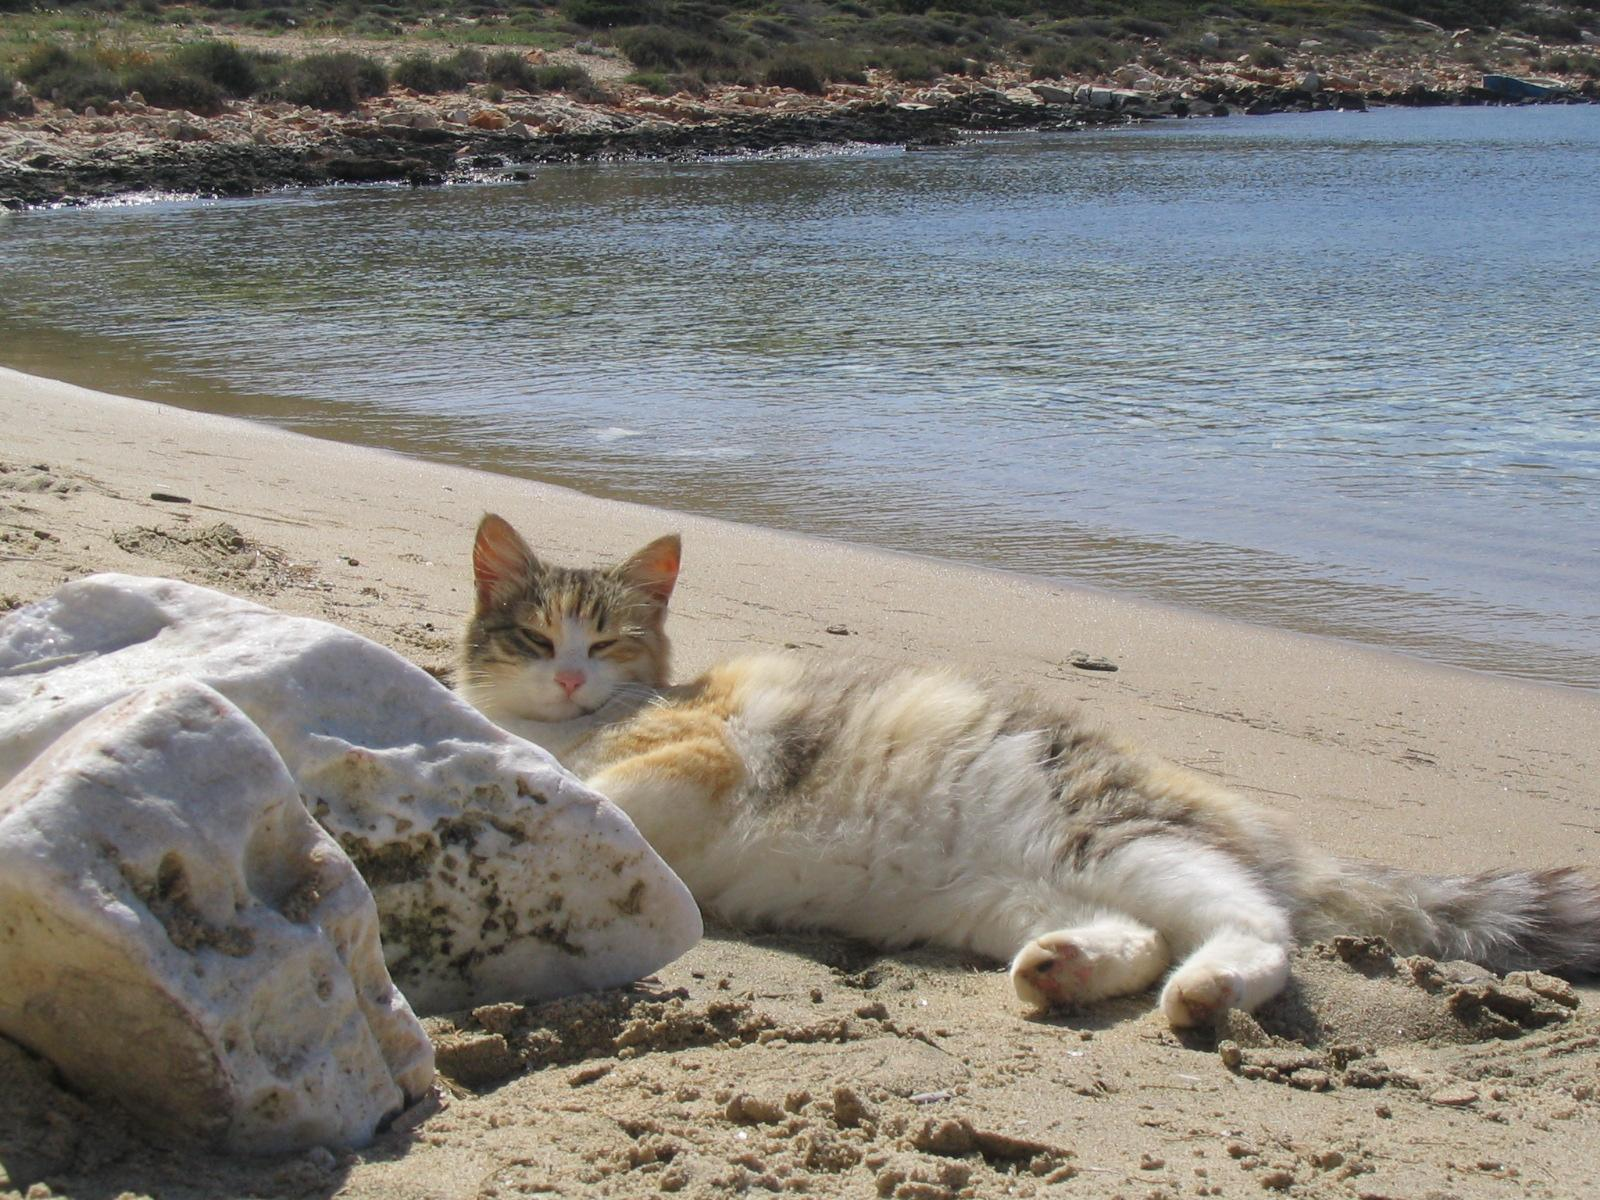 Thursday Thir Cats On The Beach Catster